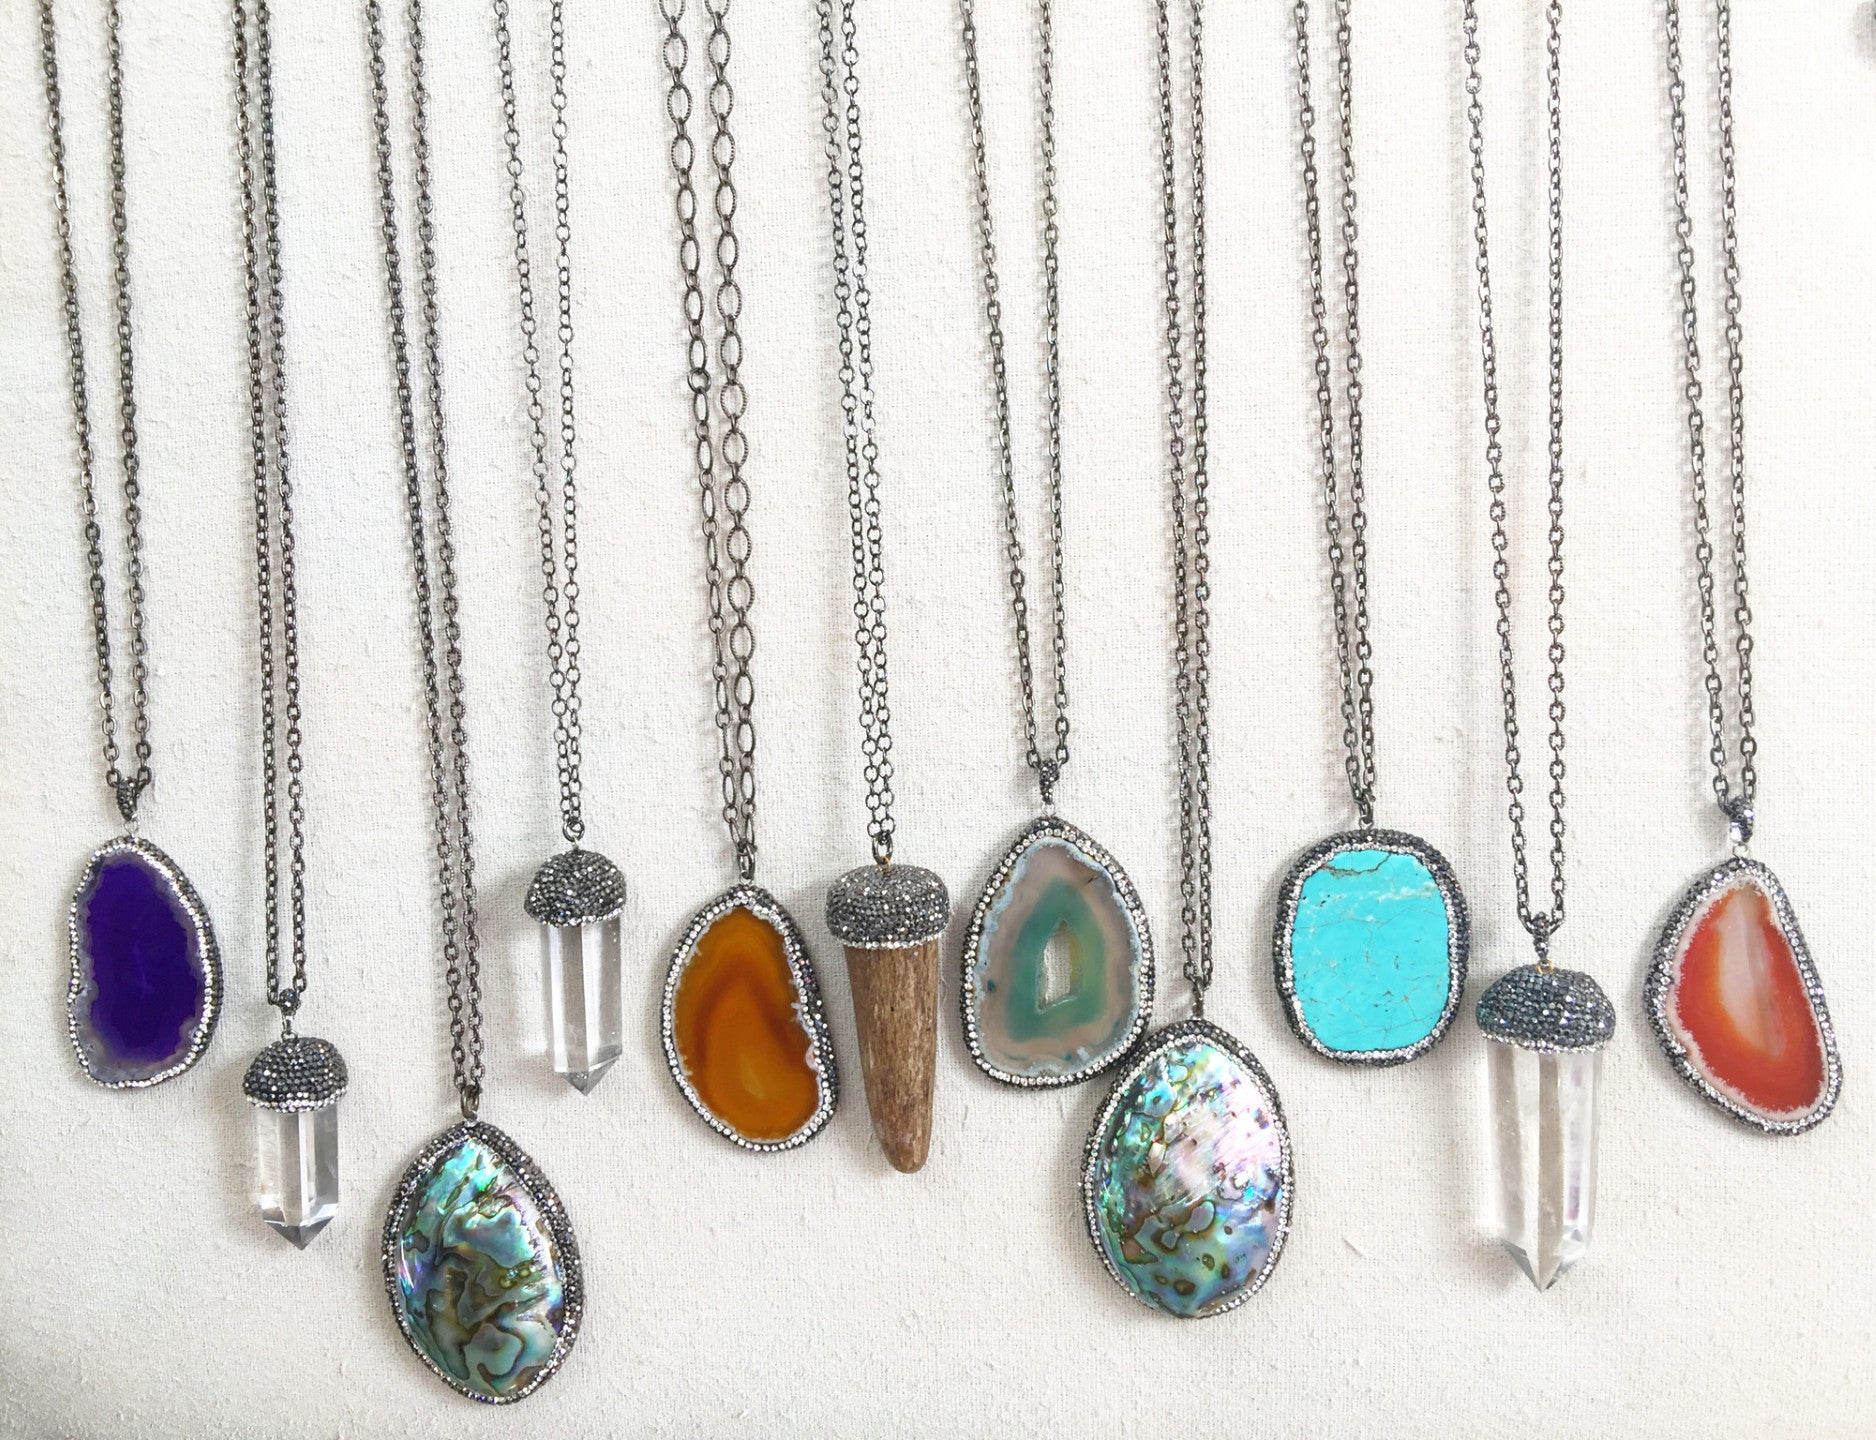 Long Pave' Necklaces